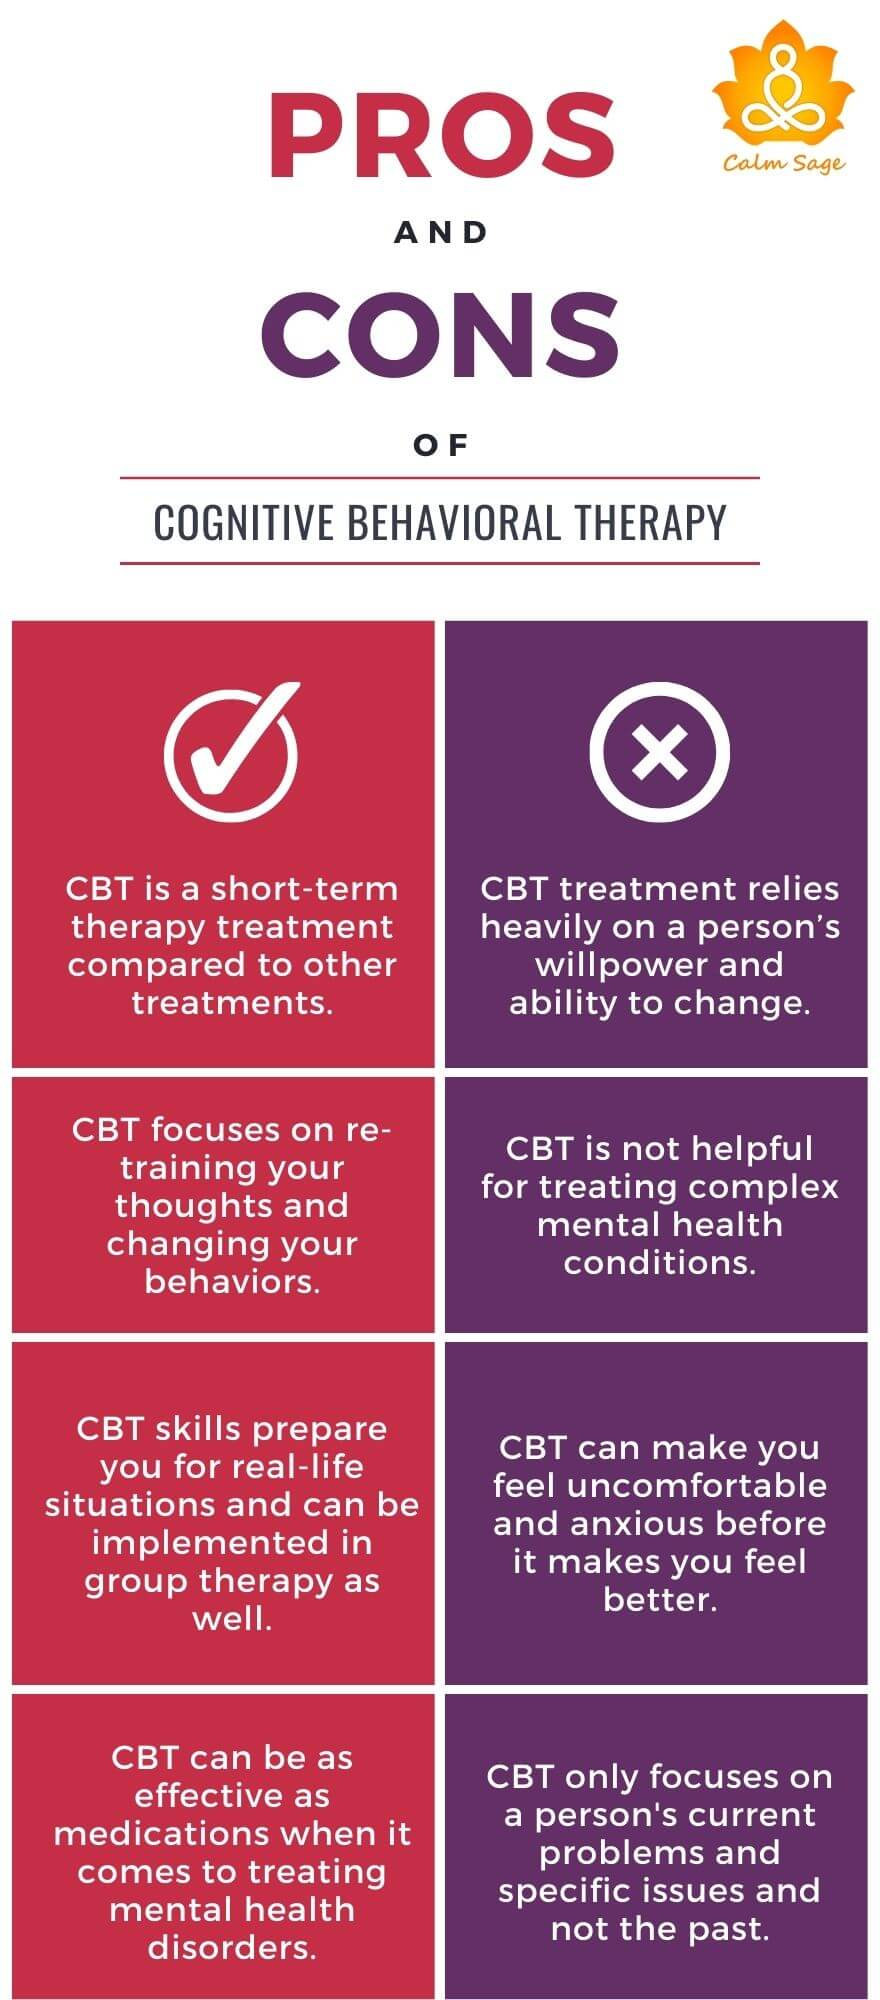 Pros and Cons Of CBT therapy